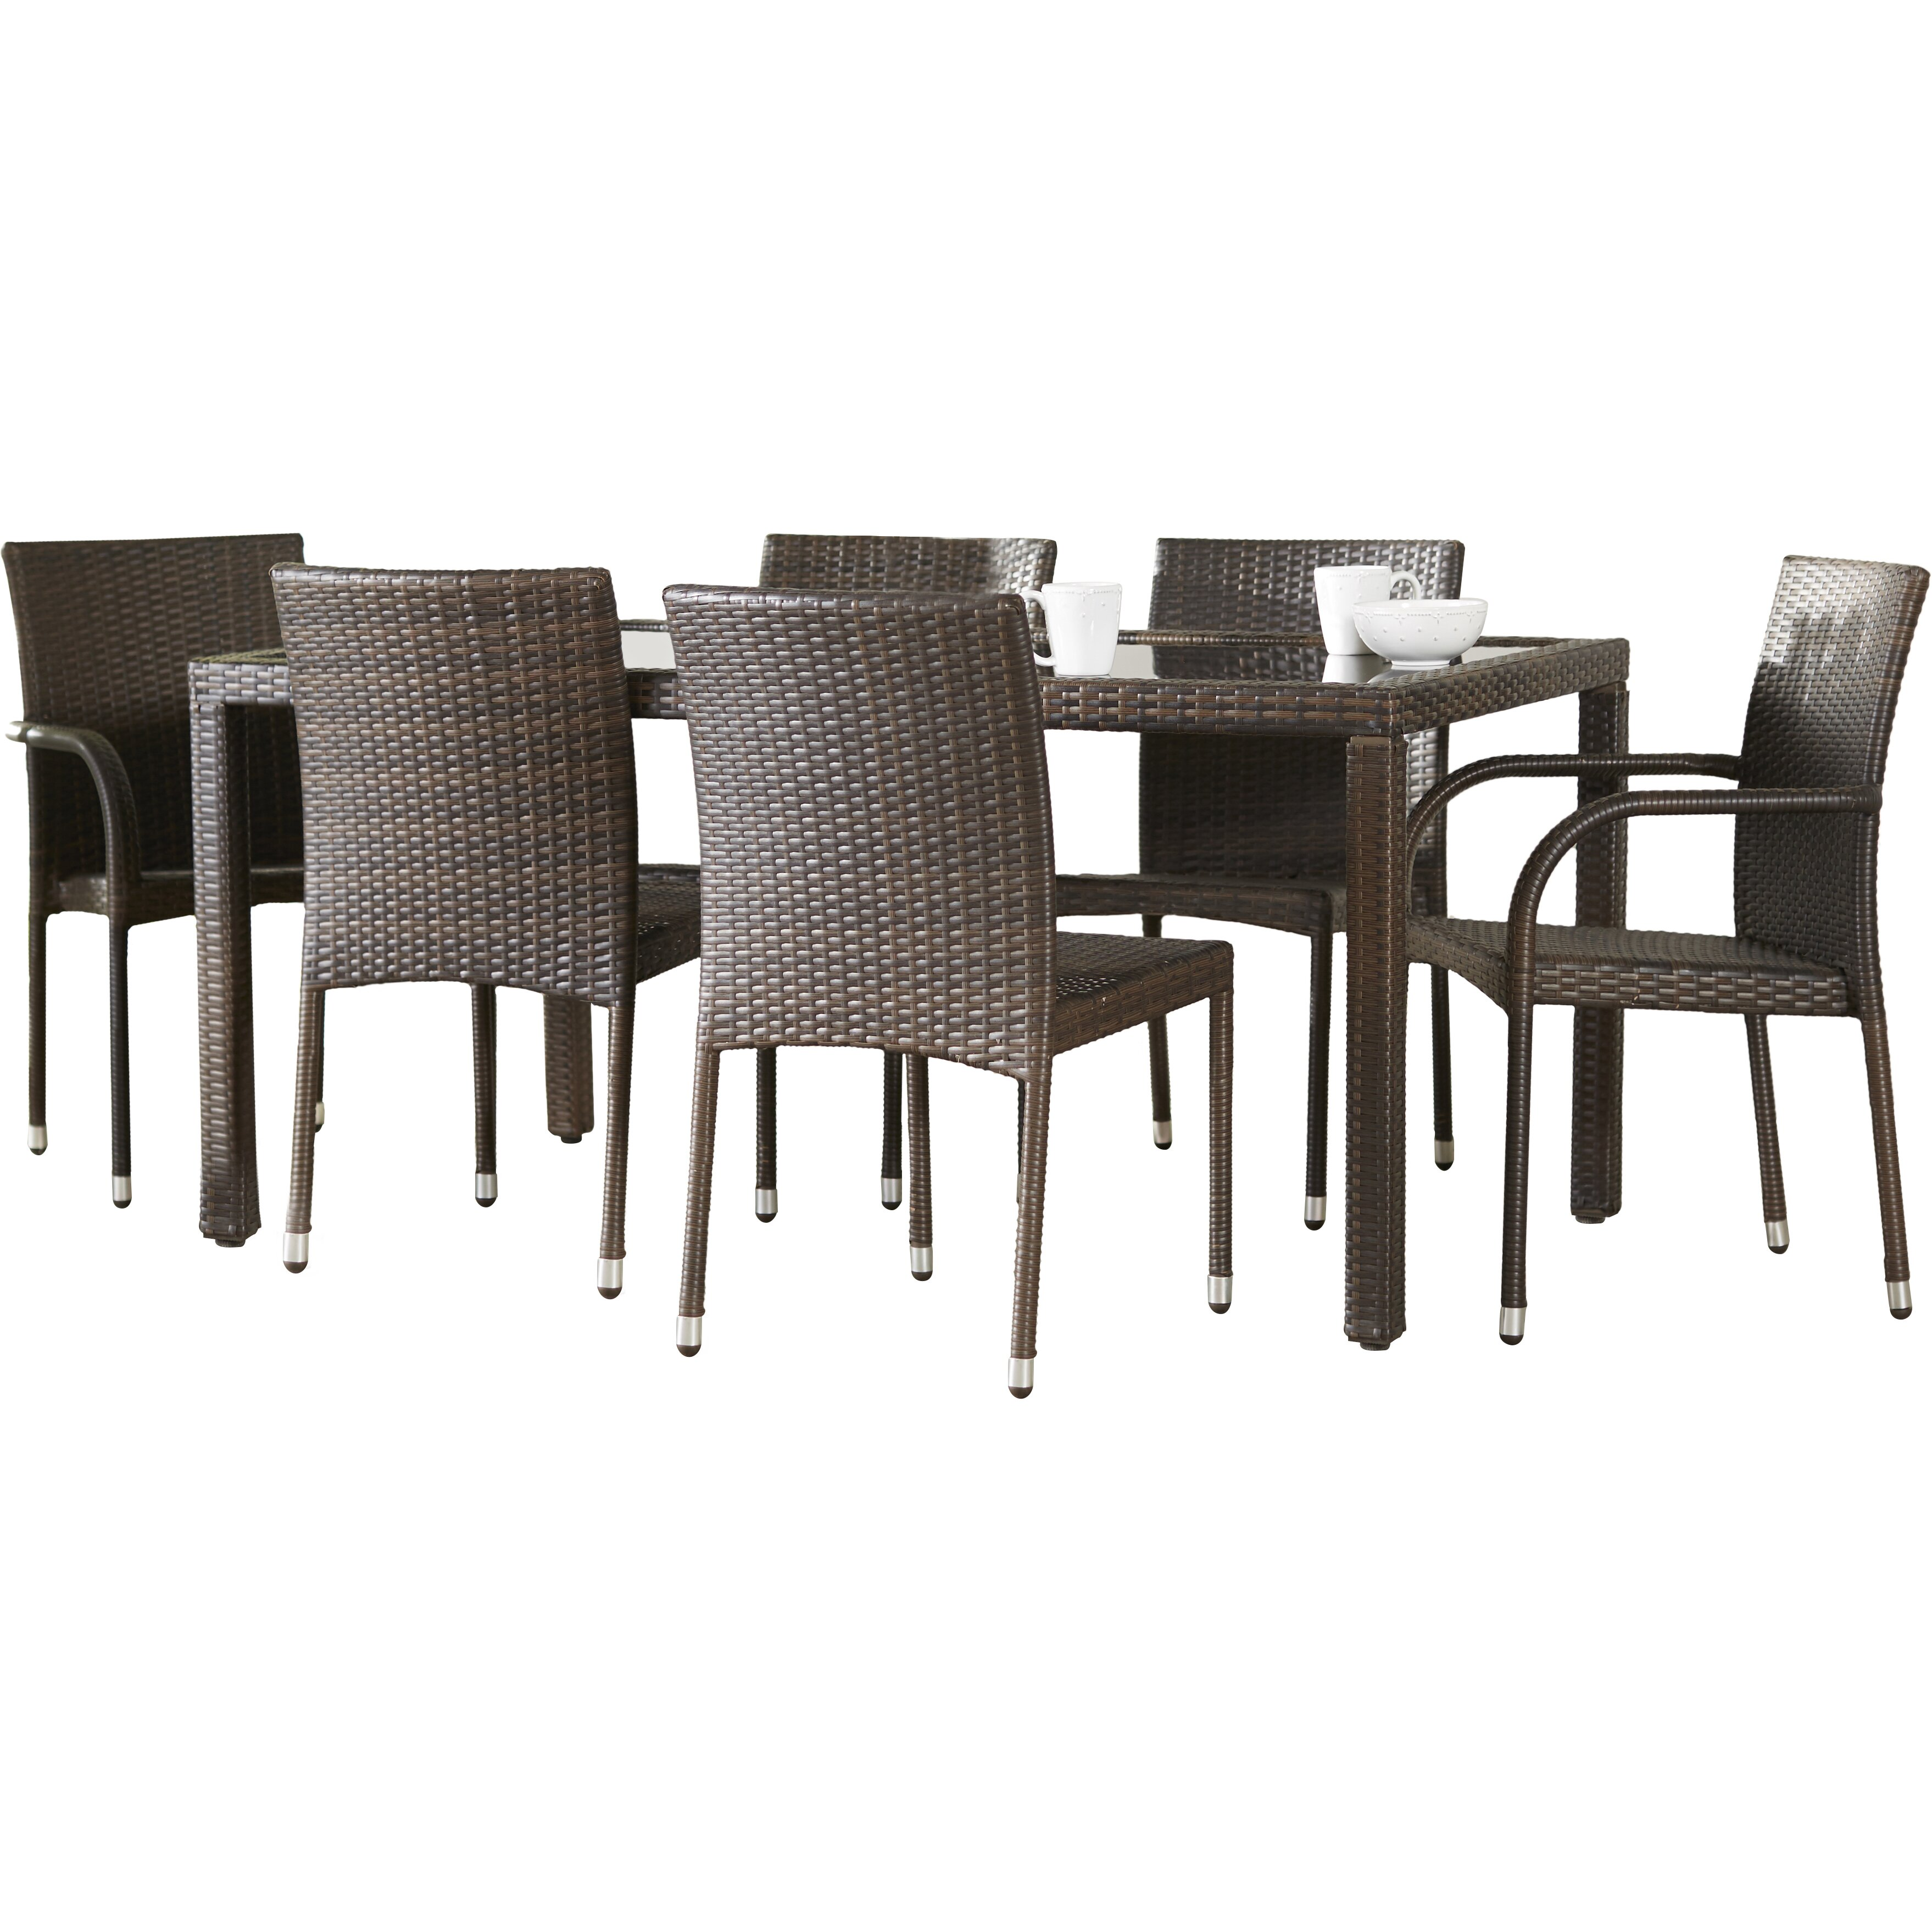 Brayden Studio Ginsburg 7 Piece Dining Set Reviews Wayfair